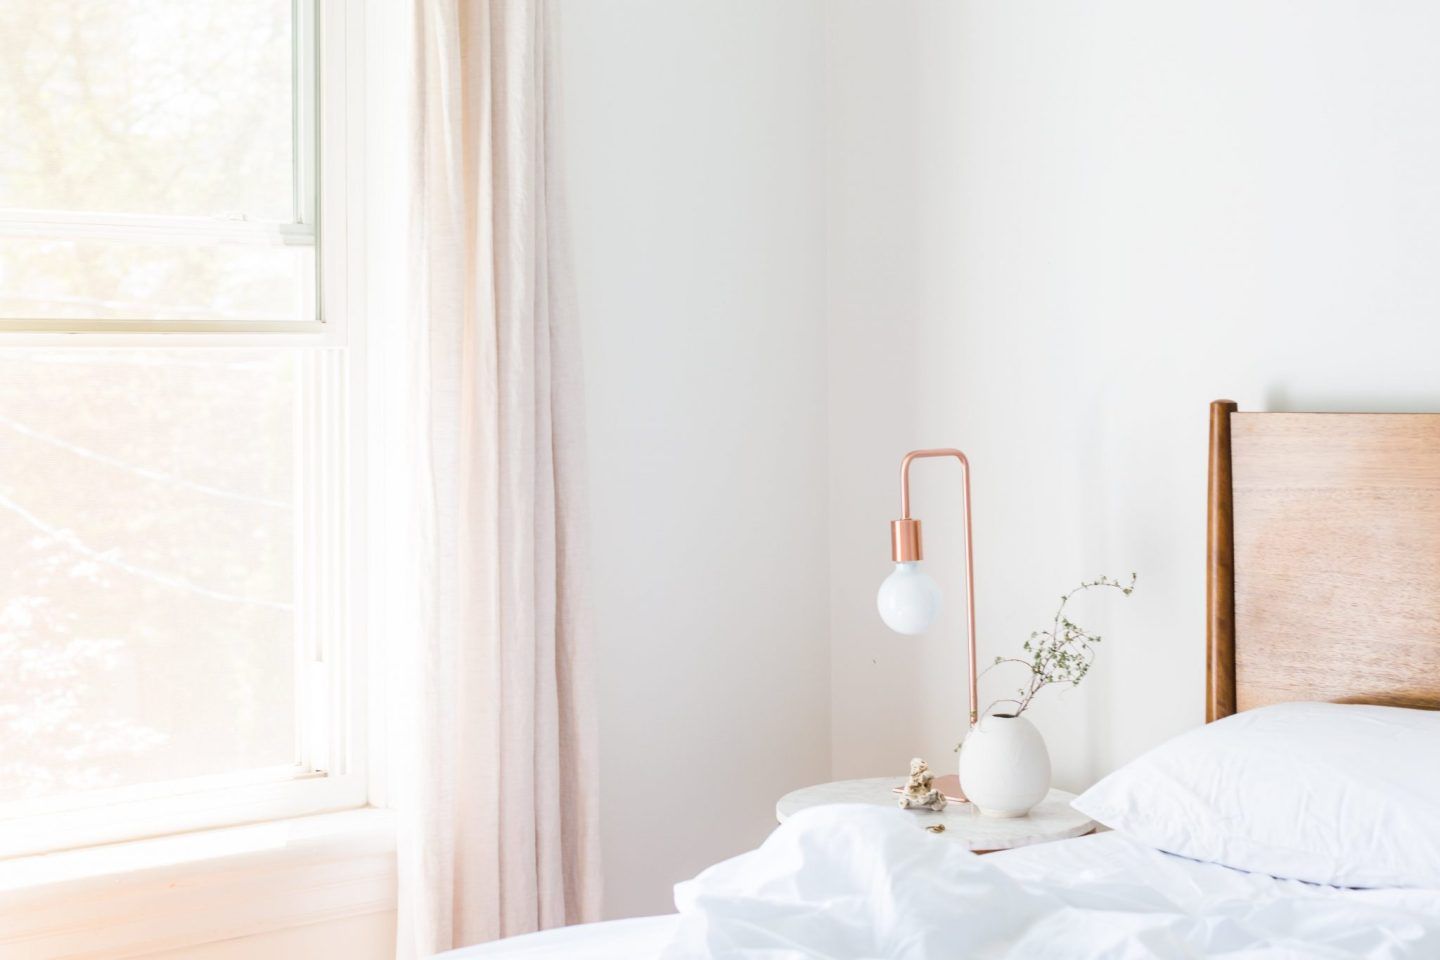 Making the most of light in a small room | The Halcyon Years